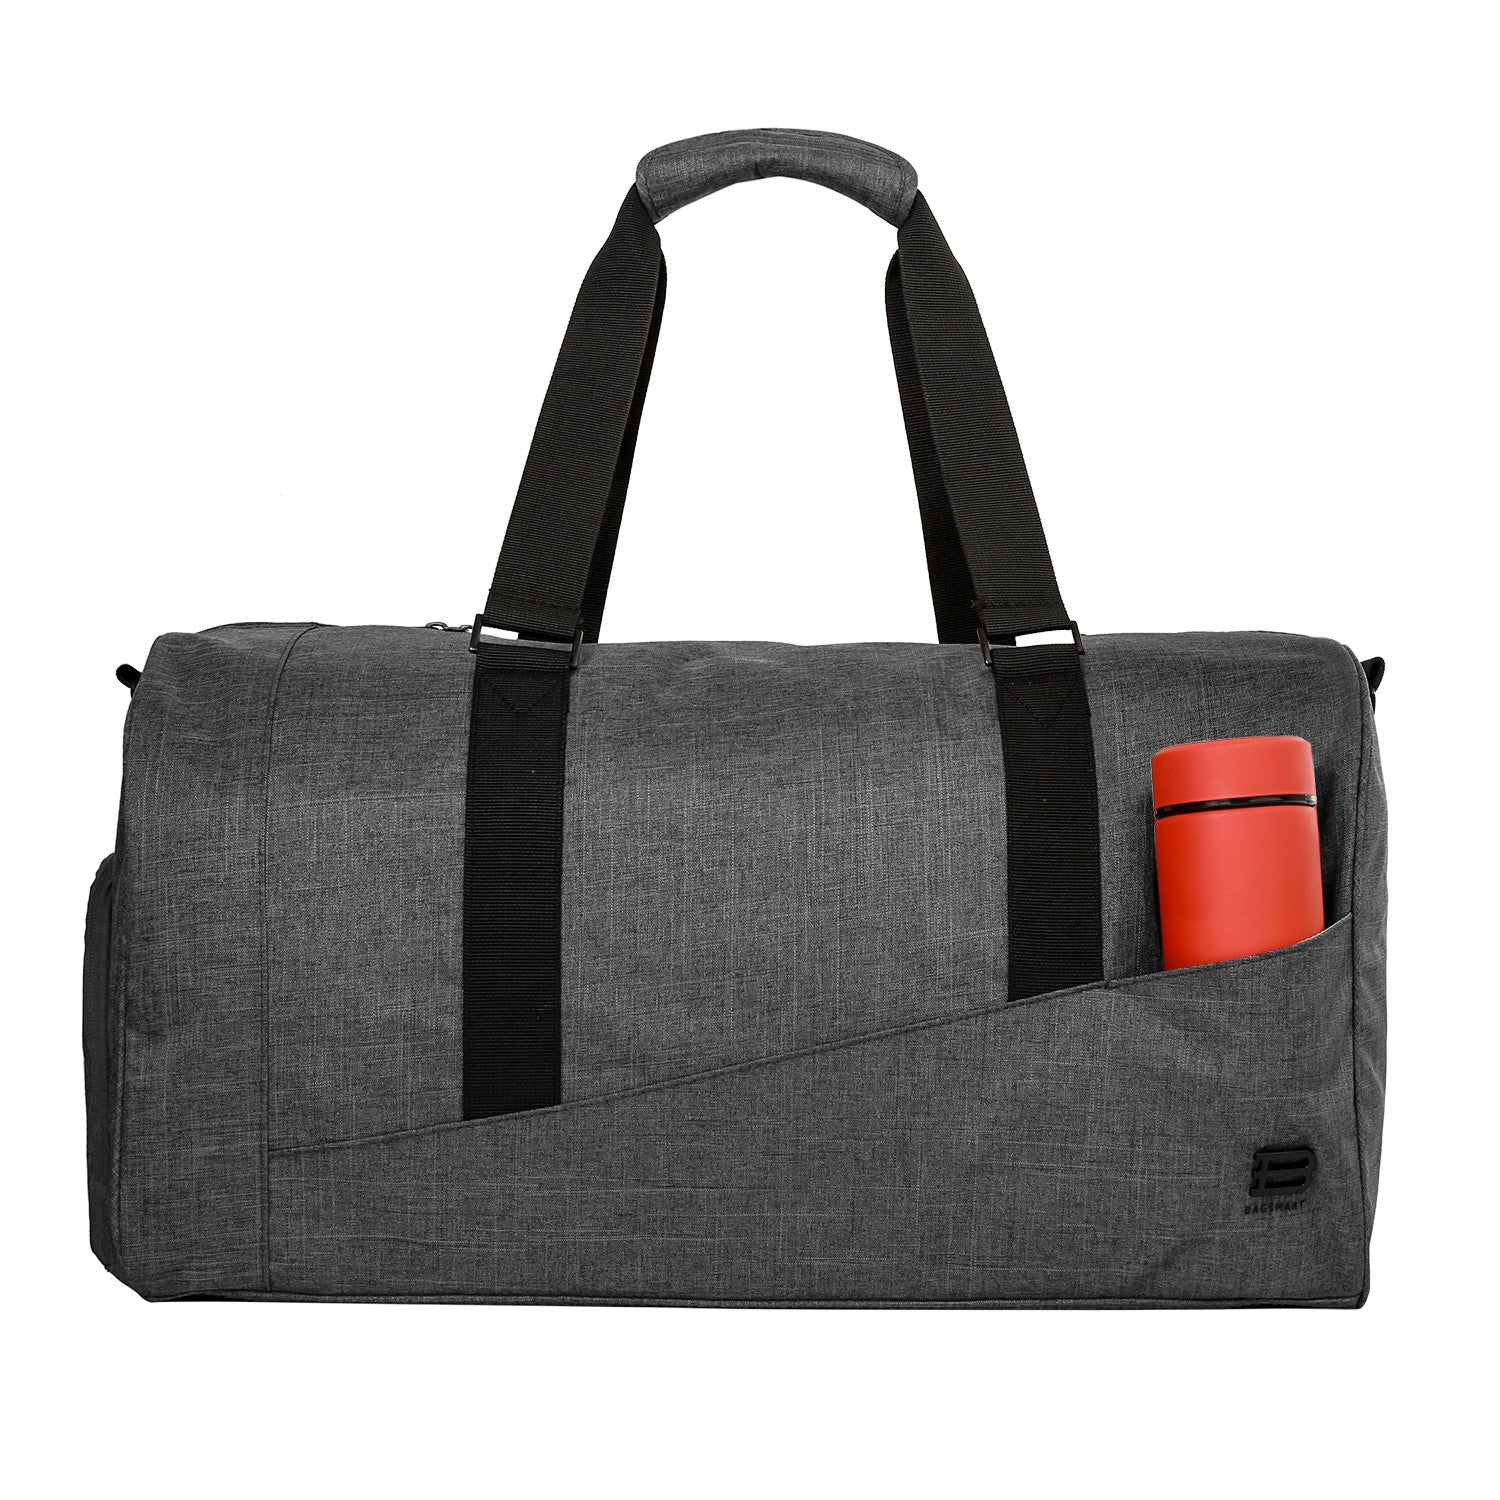 Travel Bag Large Capacity Carry on Luggage Bag Nylon Travel Duffle Shoe Pocket Overnight Weekend Bags Travel Tote